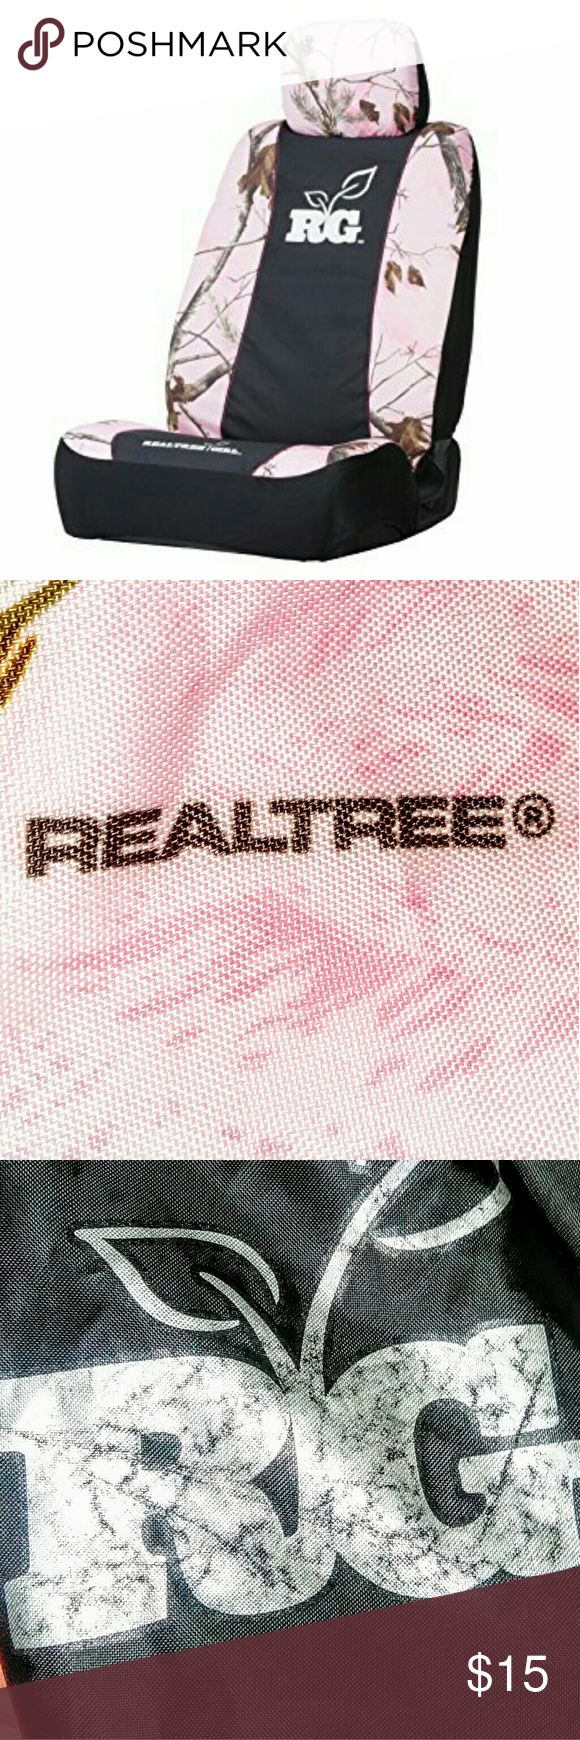 Realtree Universal Pnk/Camo Bucket Seat Cover Realtree RG pink camo universal bucket seat cover. High quality heavy polyester fabric treated to resist water and dirt. Fits most bucket seats with or without headrests. Front, side, rear mesh pockets. Anti slip backing for ideal fit and function. Pre-owned, only sign of wear is faded RG emblem, as shown in picture. Otherwise, no rips, tears, or stains. She's a trooper :) Realtree Other